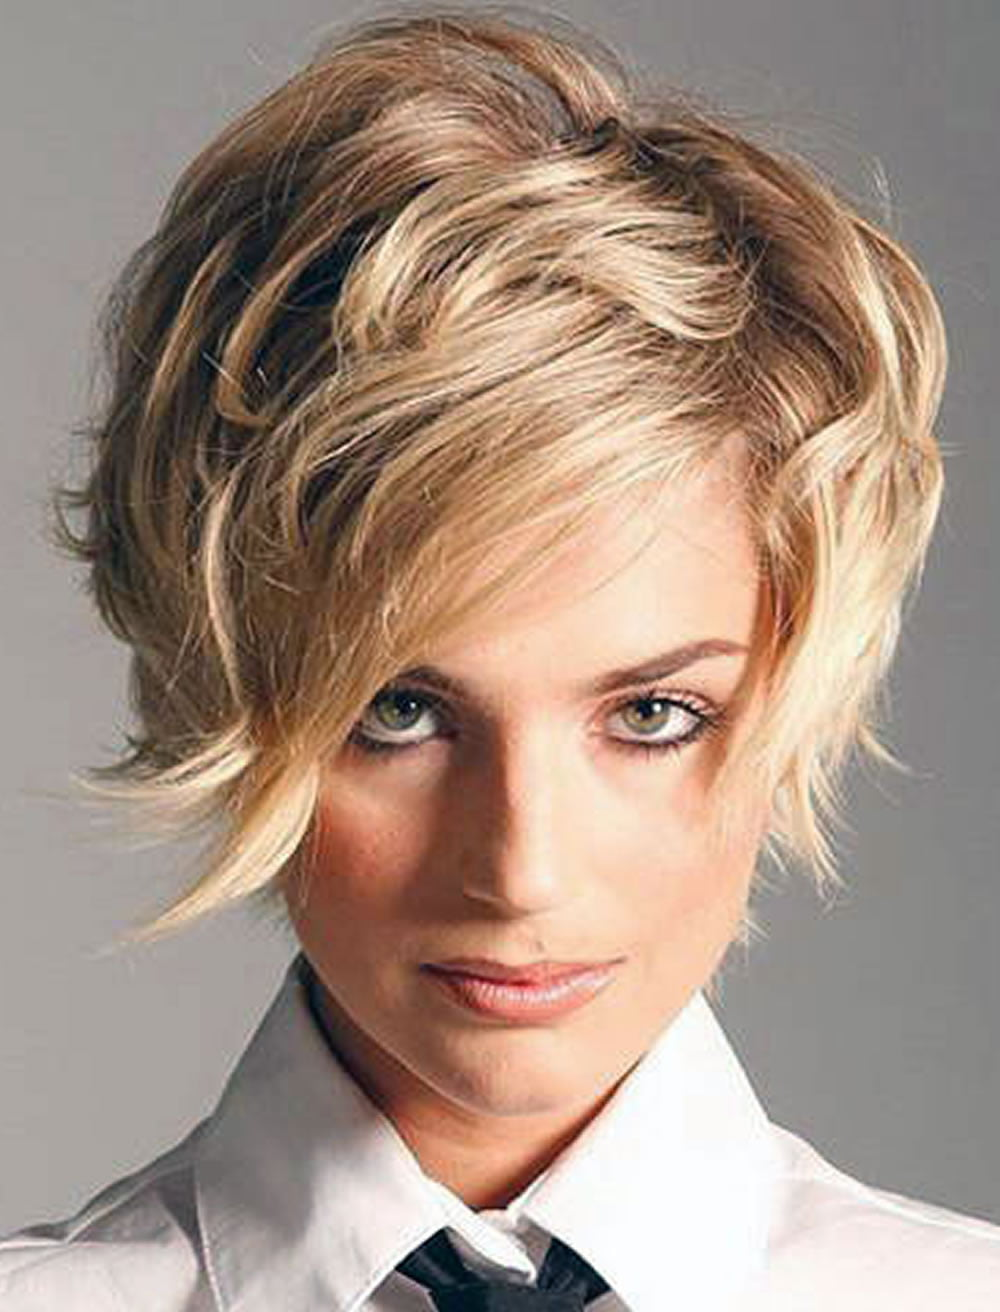 changing hair style 30 amazing hair haircuts for 2018 2019 page 2019